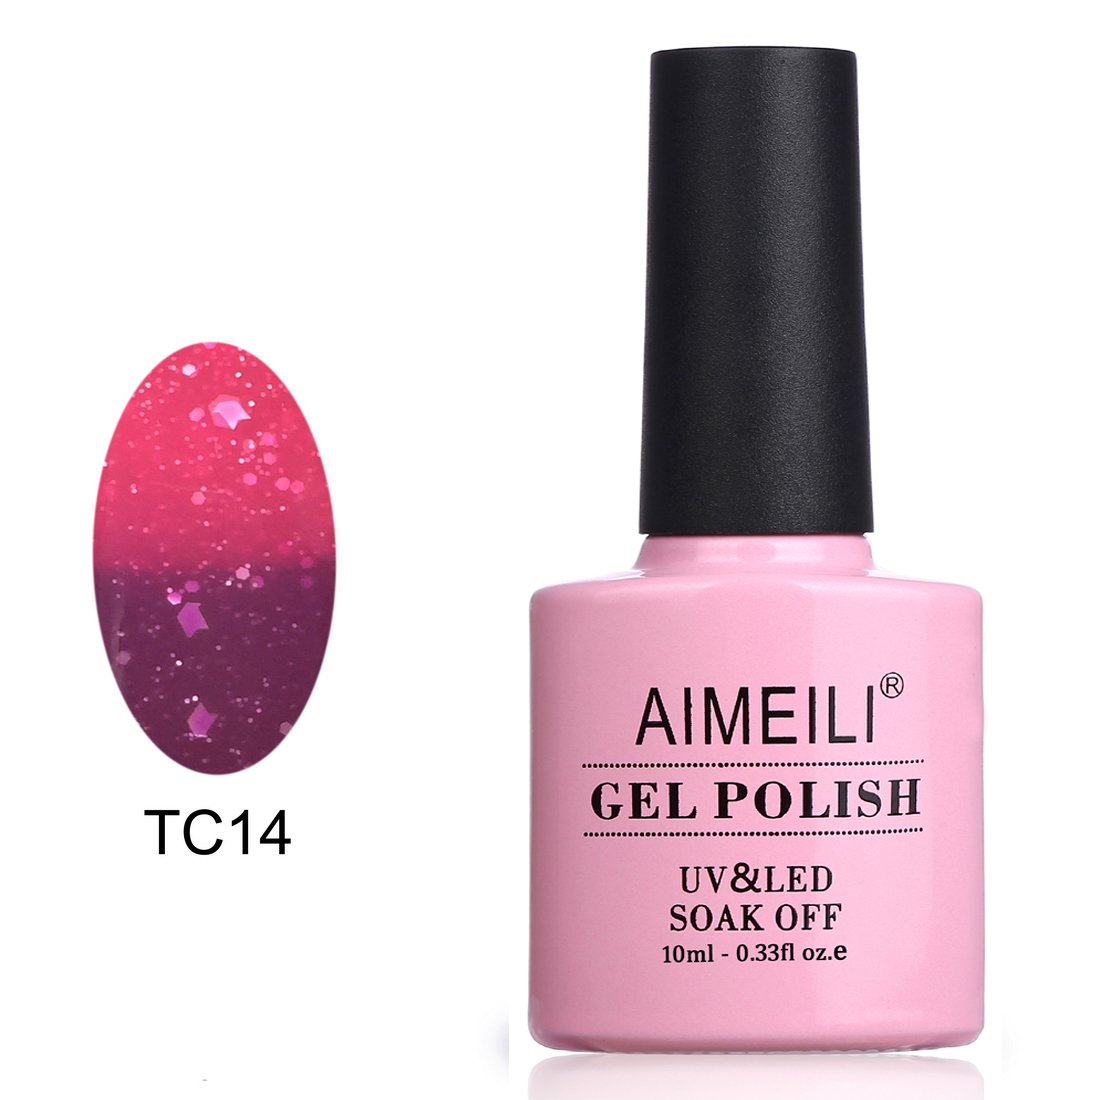 AIMEILI Soak Off UV LED Temperature Color Changing Chameleon Gel Nail Polish - Violet Villain (TC14) 10ml